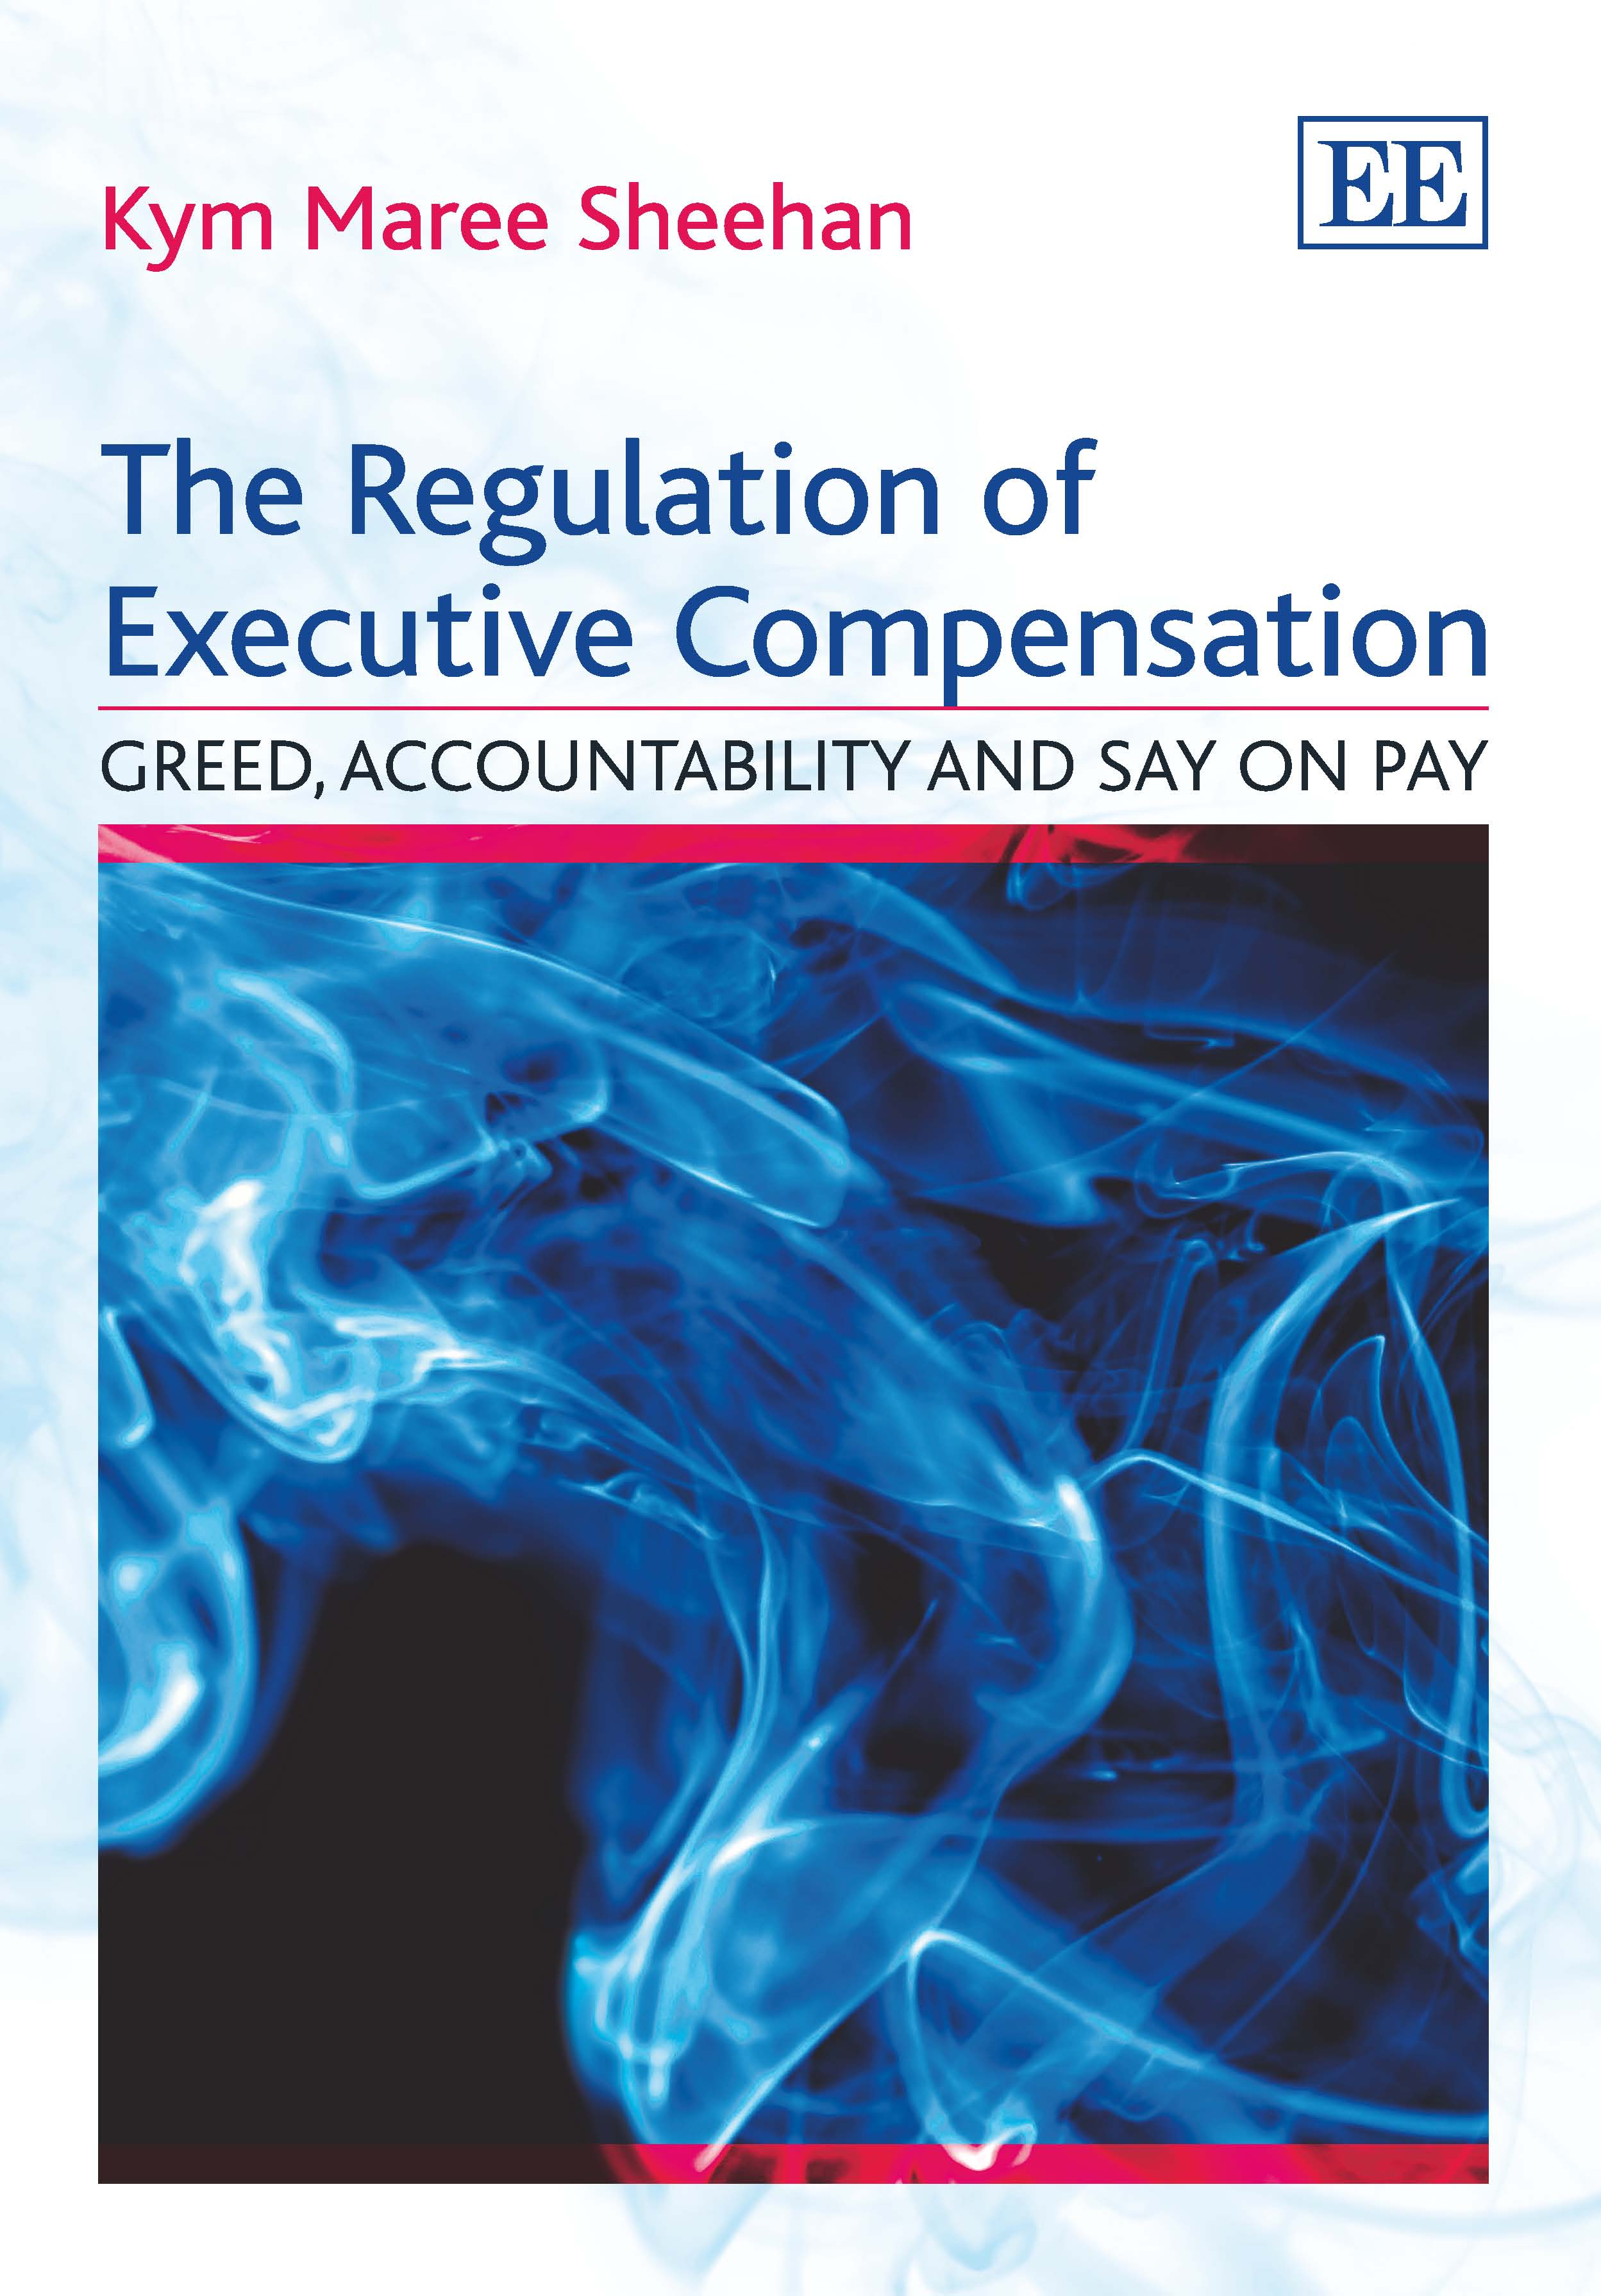 The Regulation of Executive Compensation